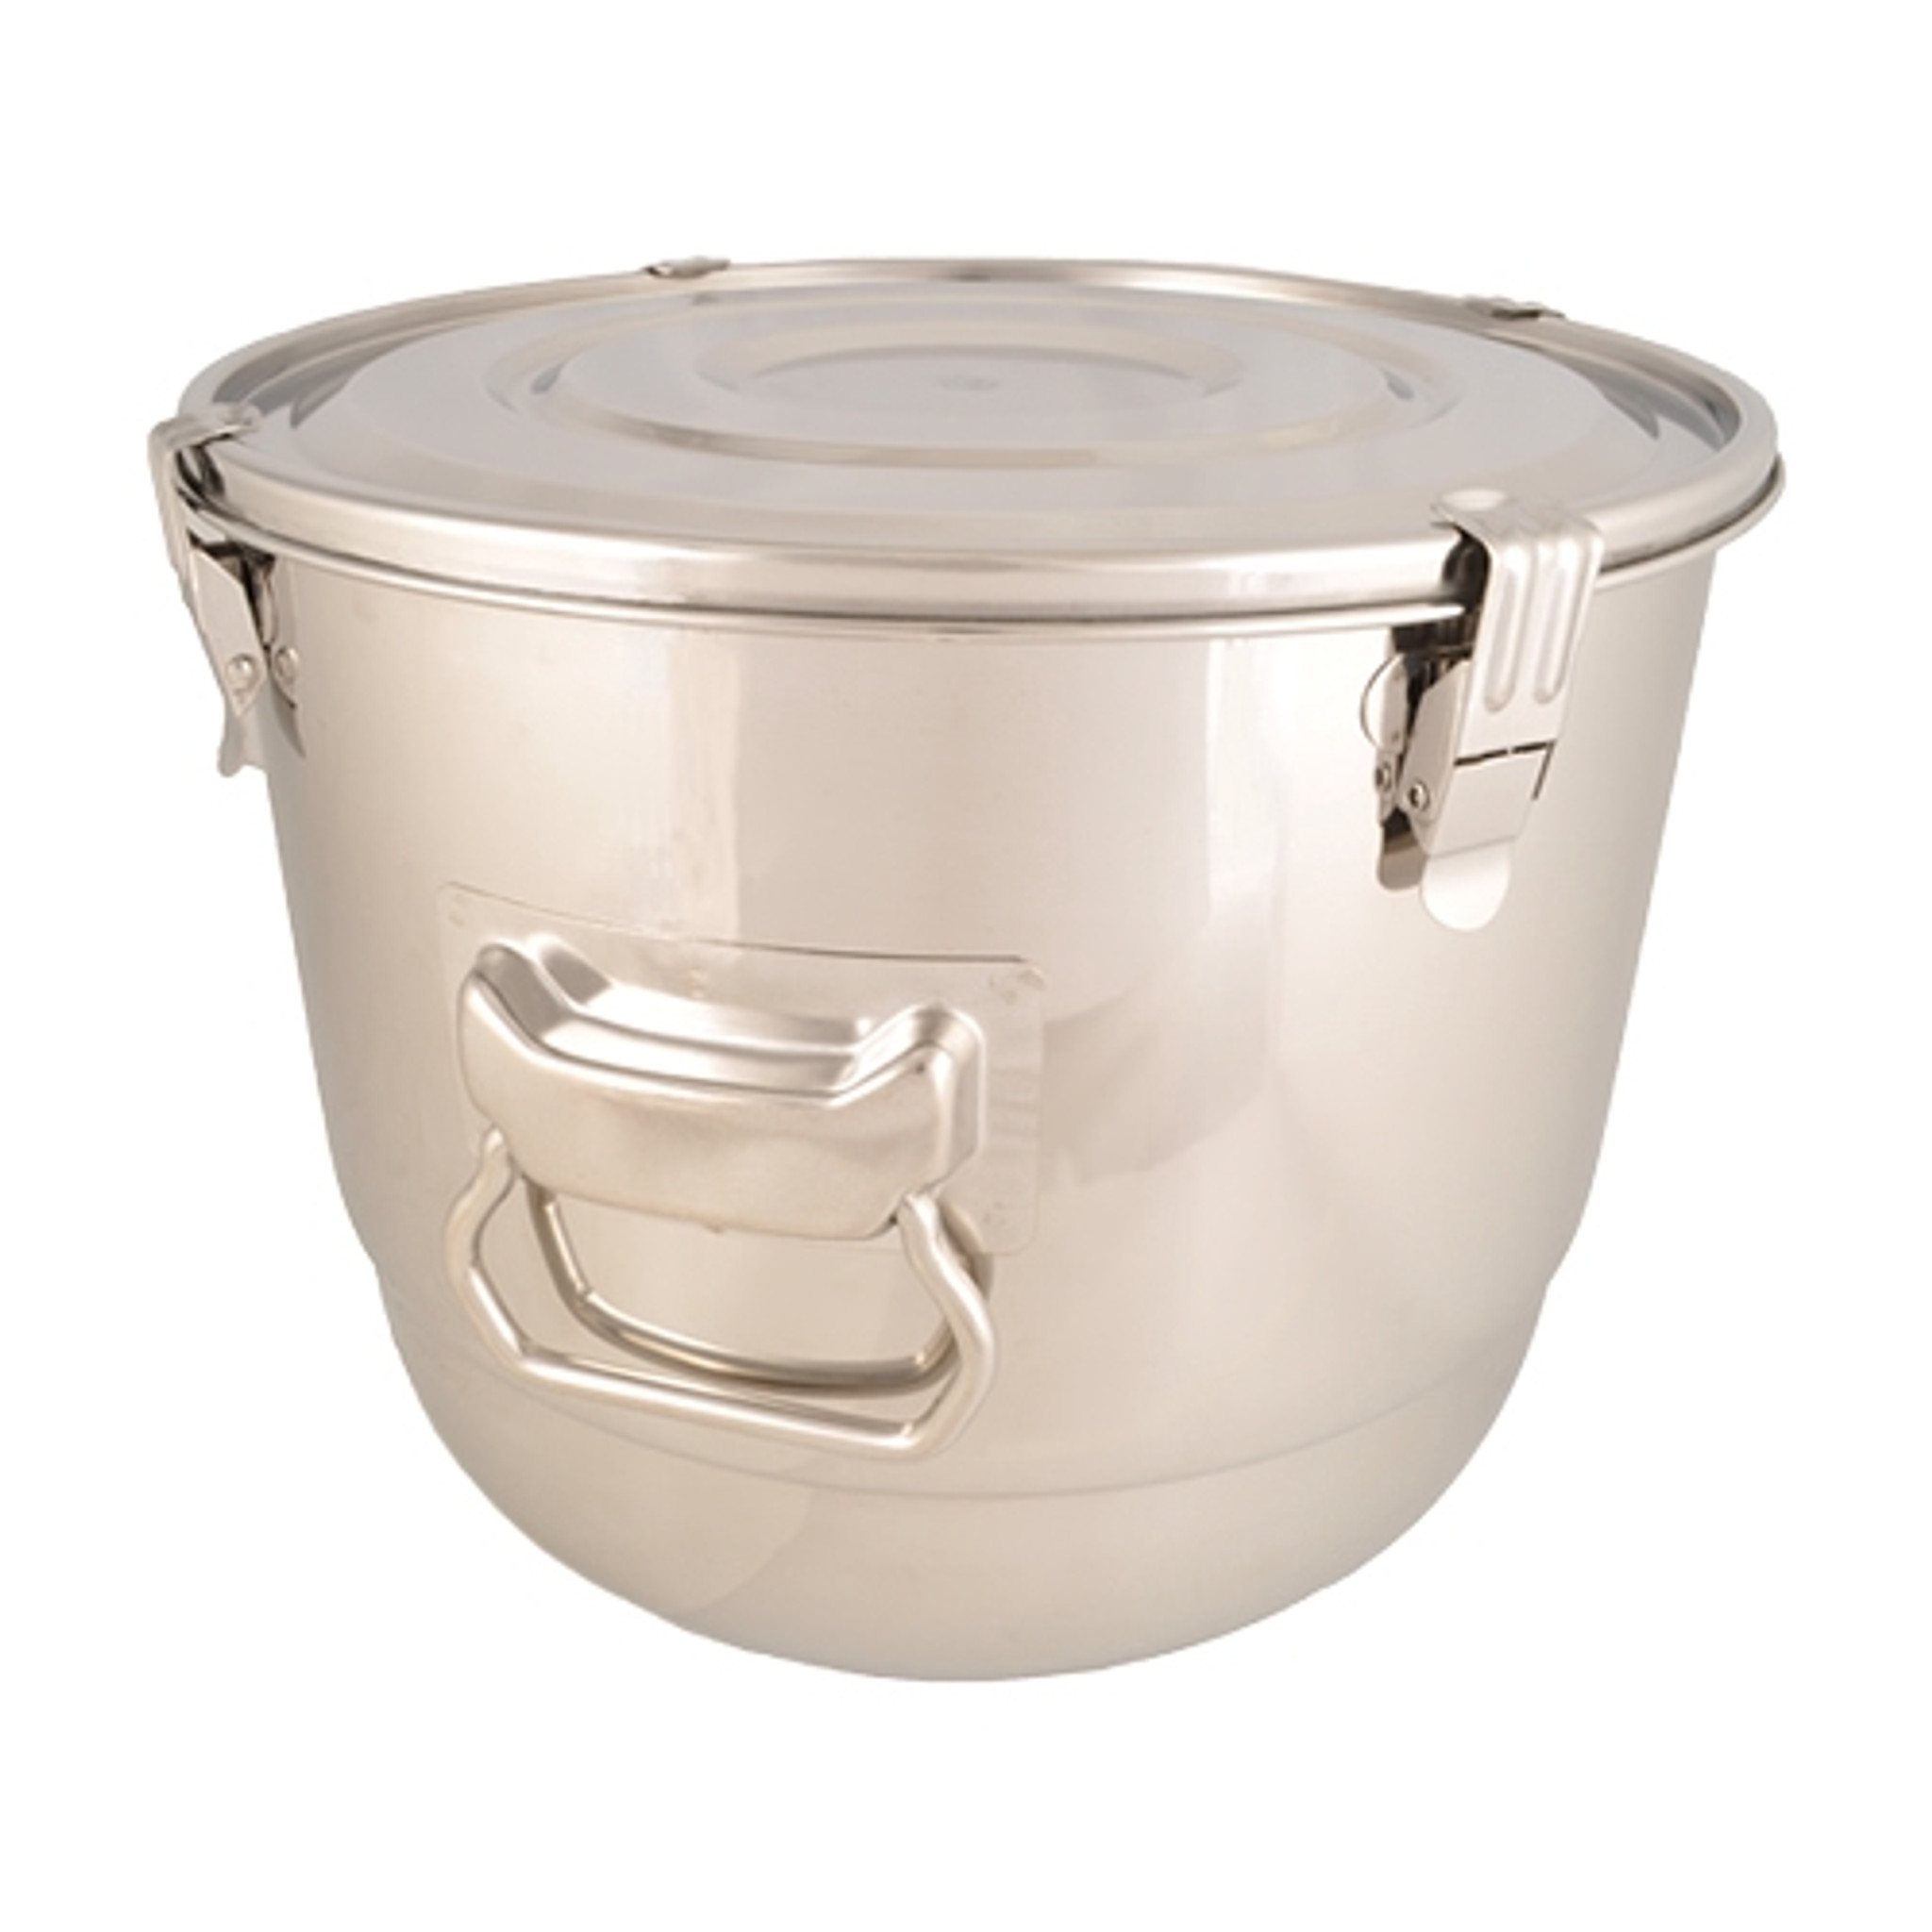 f53b9c51a Stainless Steel Airtight Watertight Food Storage Container